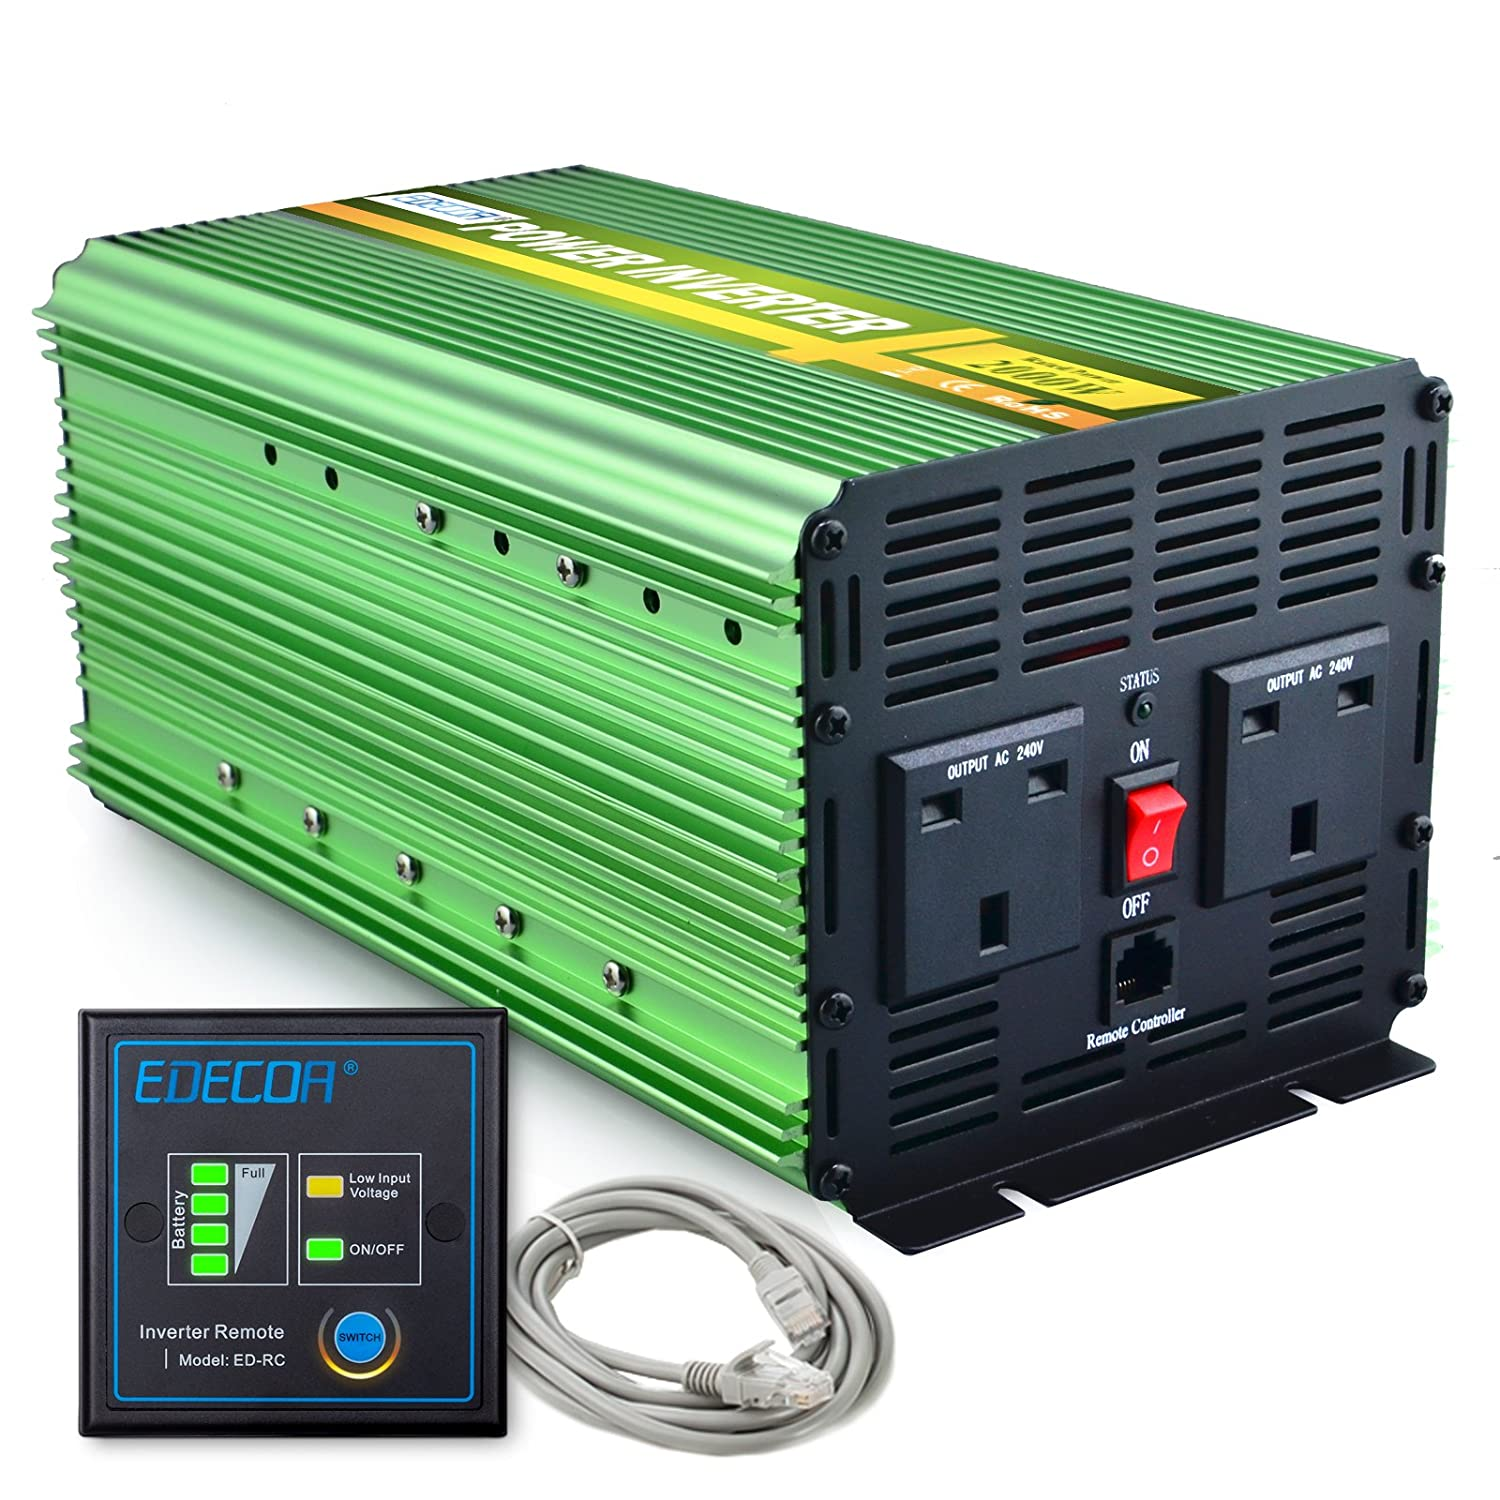 EDECOA 2000W Power Inverter DC 12V to 240V AC with Remote Control - Green